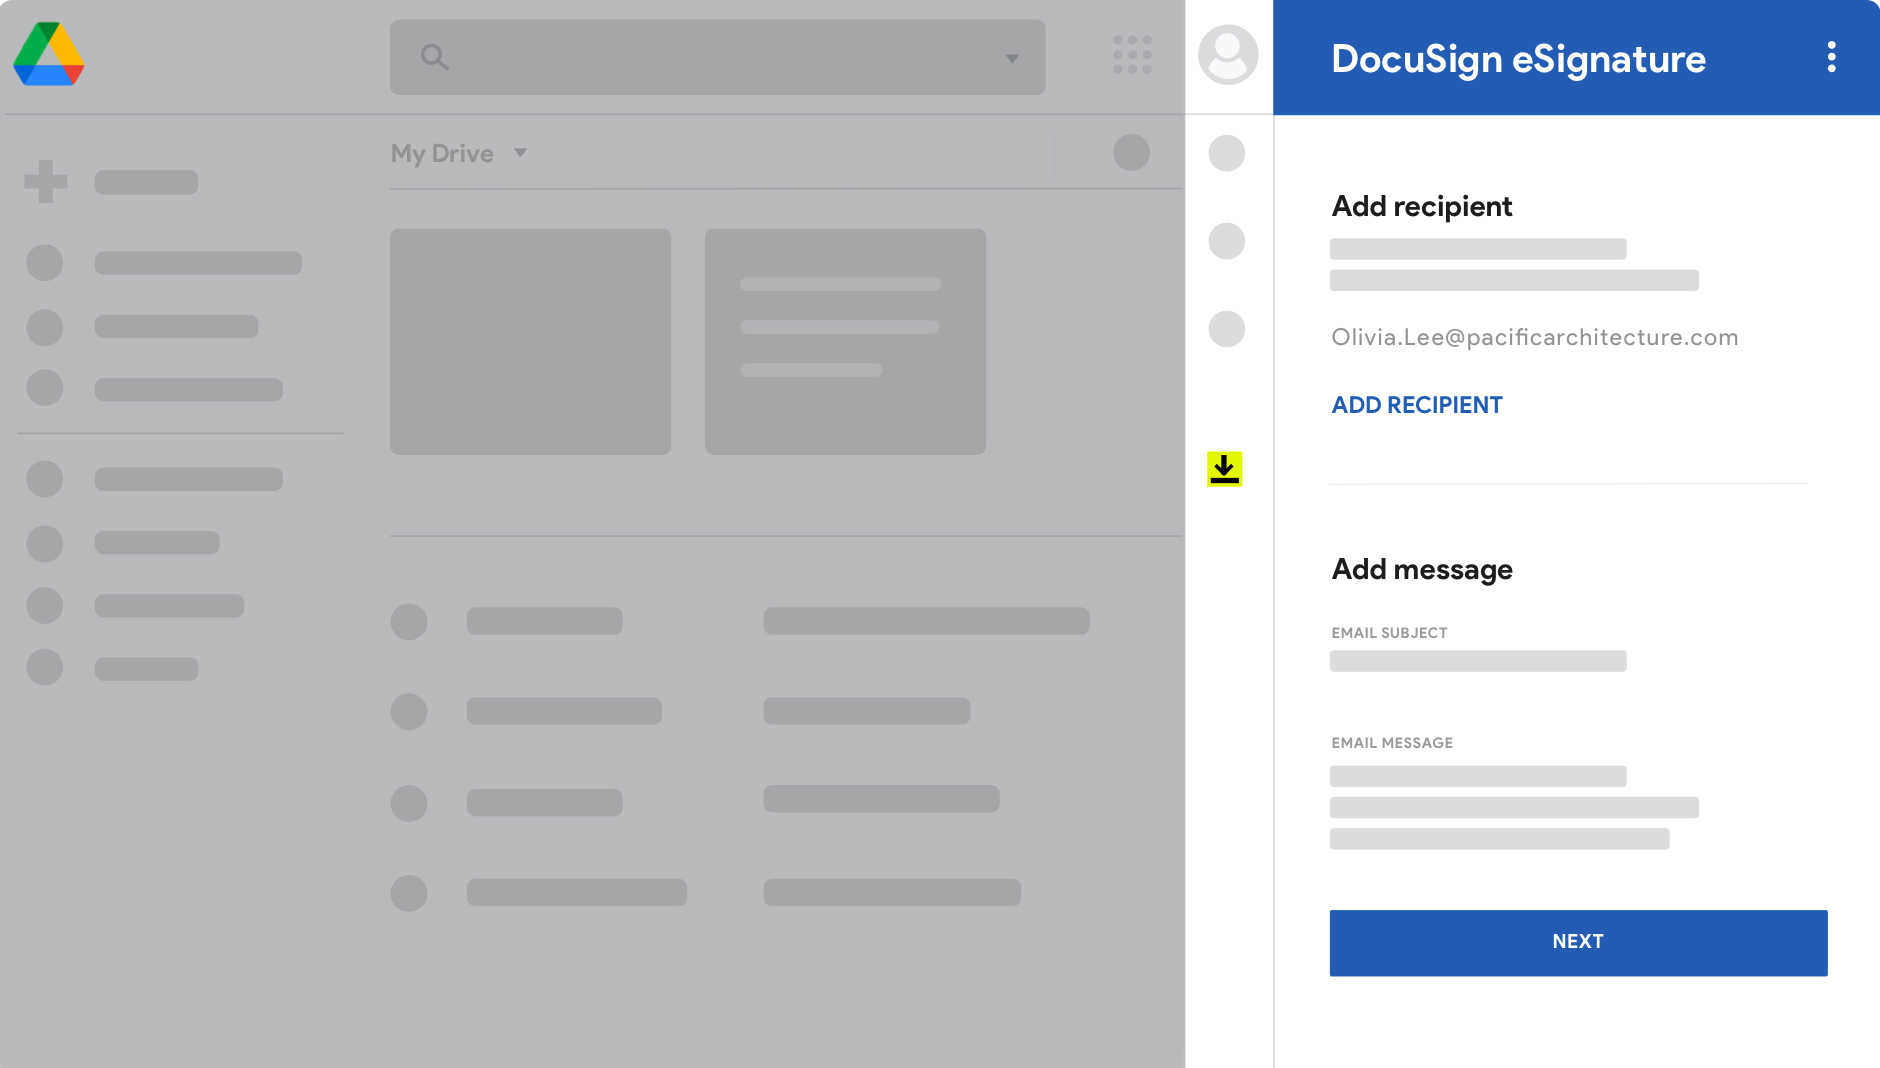 Google Drive screen with DocuSign eSignature.